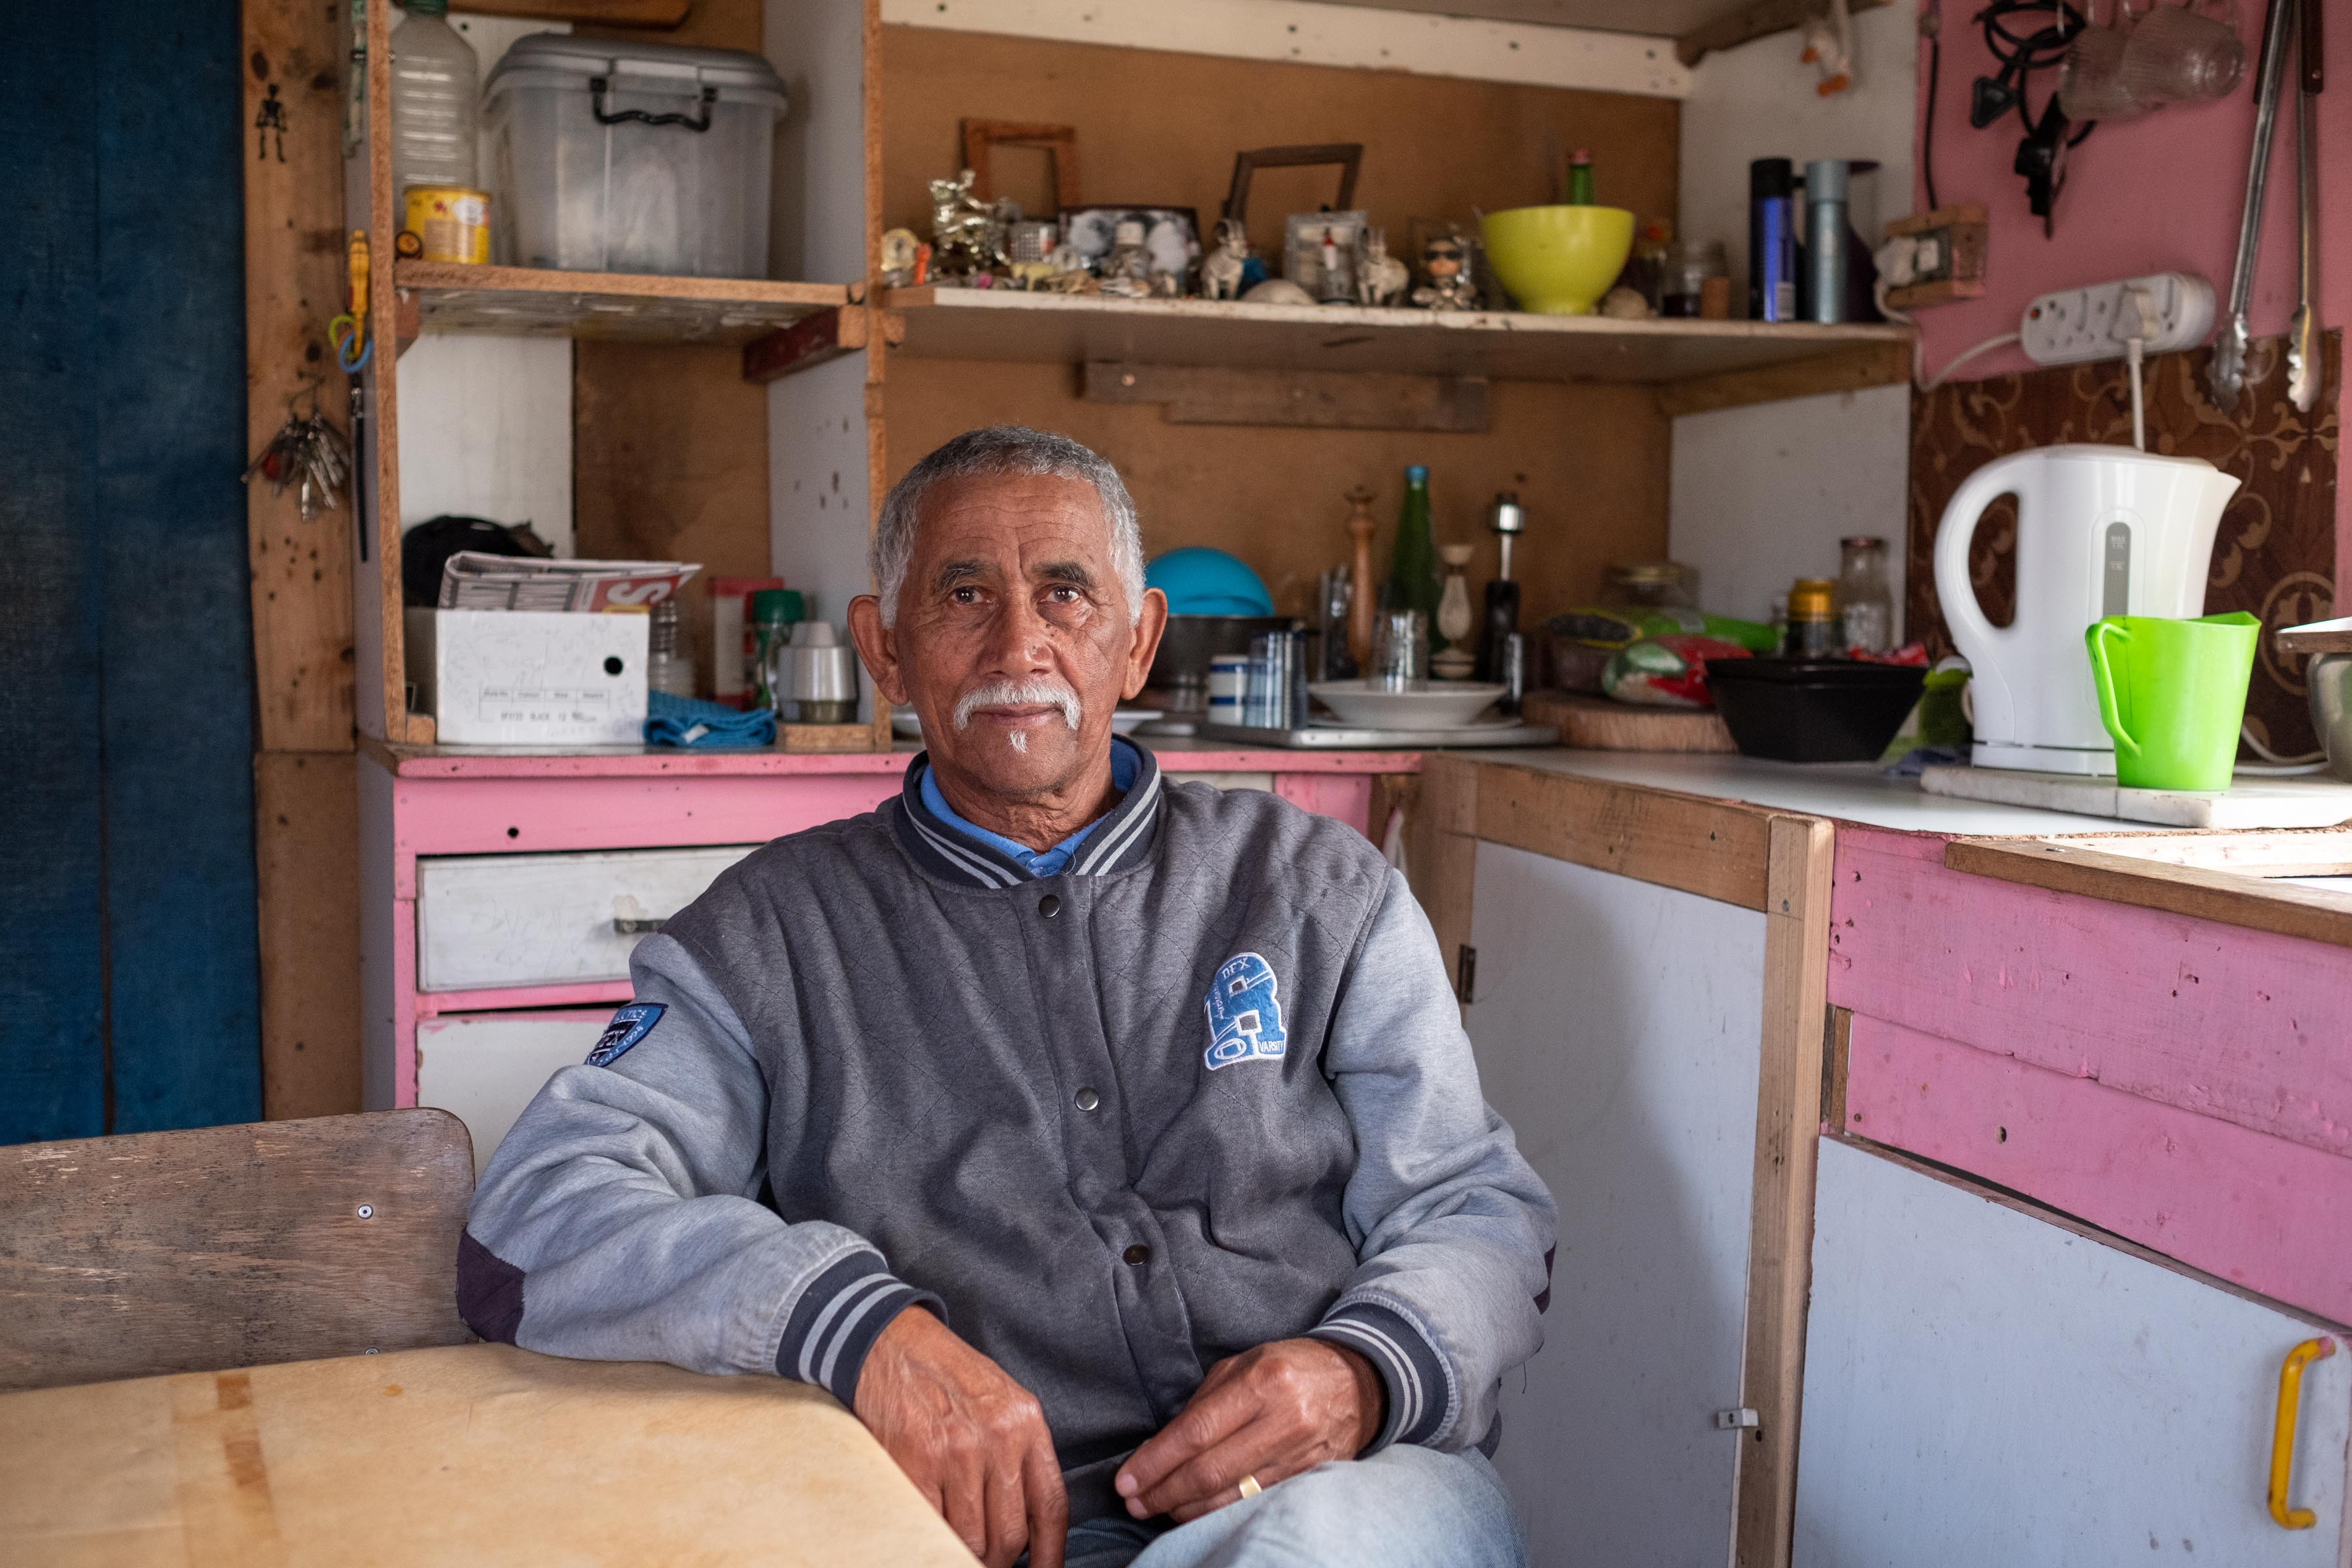 6 August 2019: Ernest Adriaanse, 71, at his home on the Klipfontein Mission Station. He started working at the age of nine, chopping wood to help support his family. All he wants now is to live in peace.